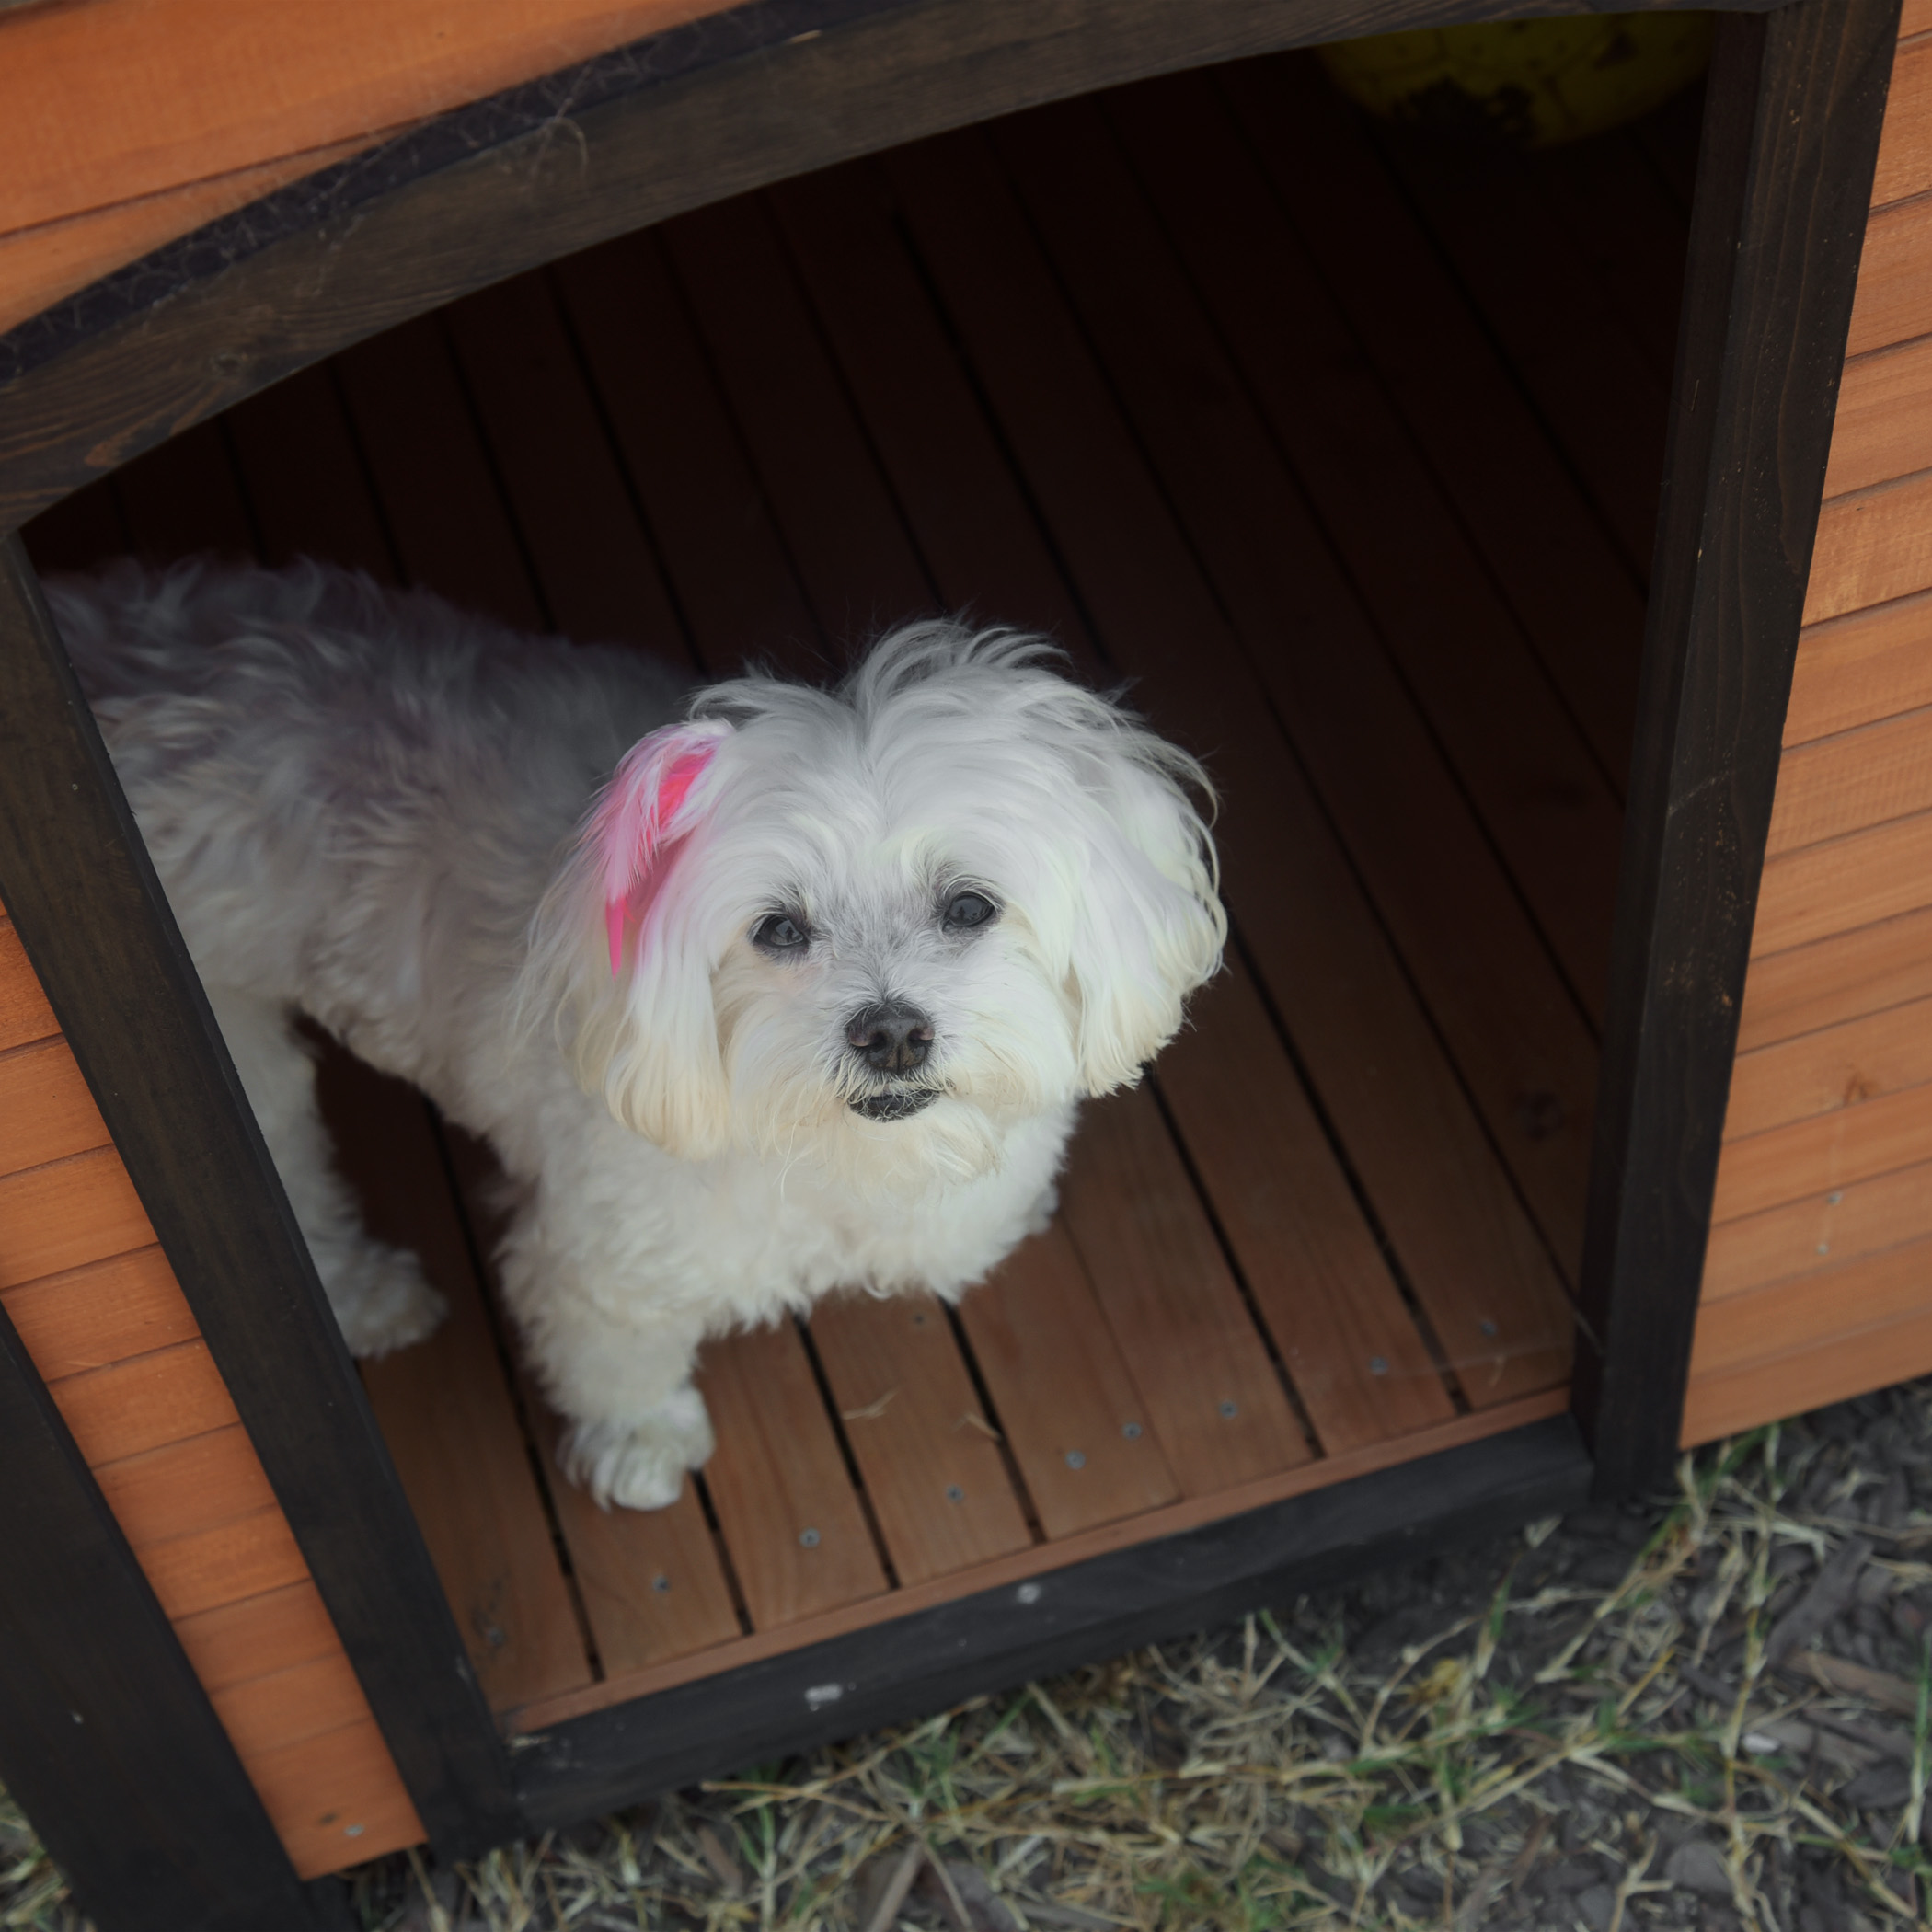 The house we are staying at has a hidey hole perfect for hiding from my pesky brothers! Now, it just needs some puffy pillows, a chandelier, some glitter and glam, and all the amenities fit for a princess! All pinks and purples, please! (If she only knew the size of the dog that owns that home!)